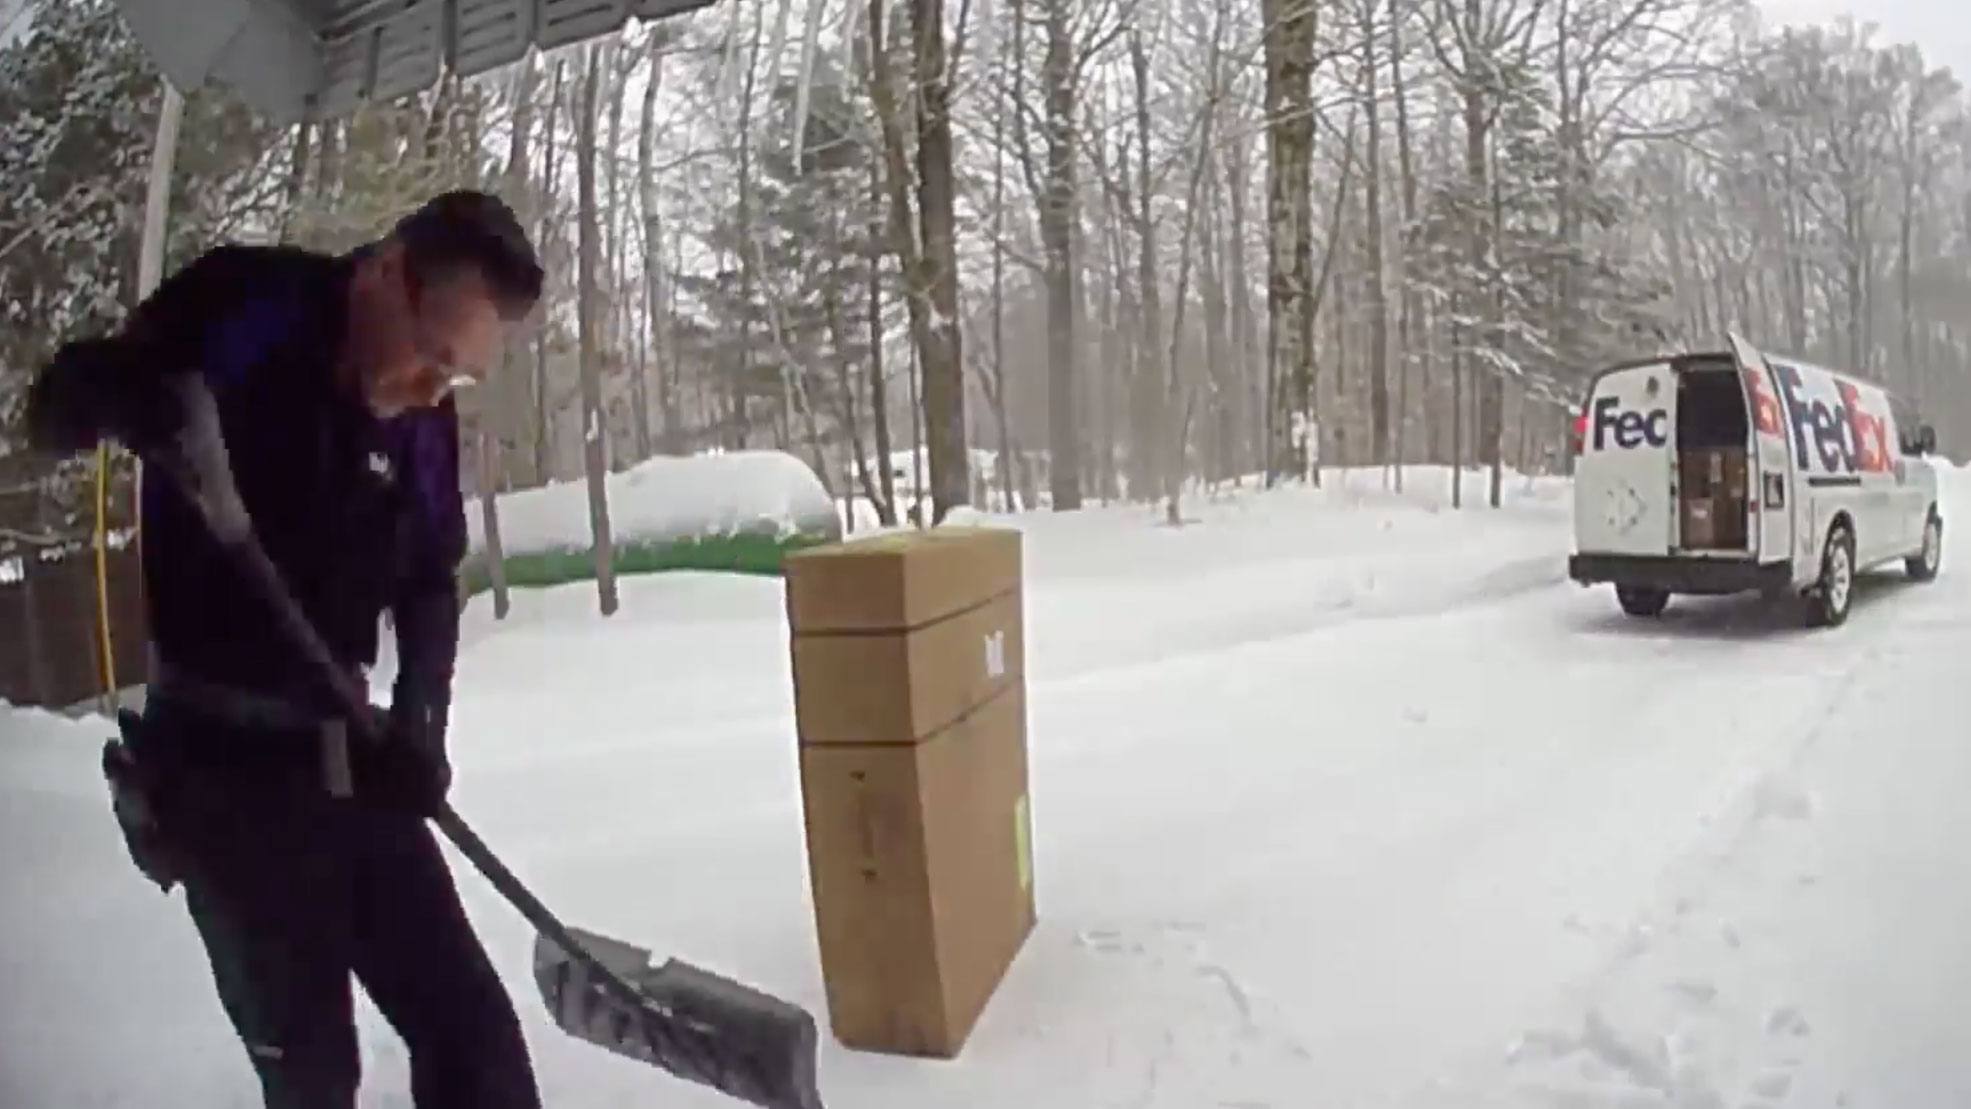 This FedEx driver delivered more than a customer's package. He shoveled snow off the stoop